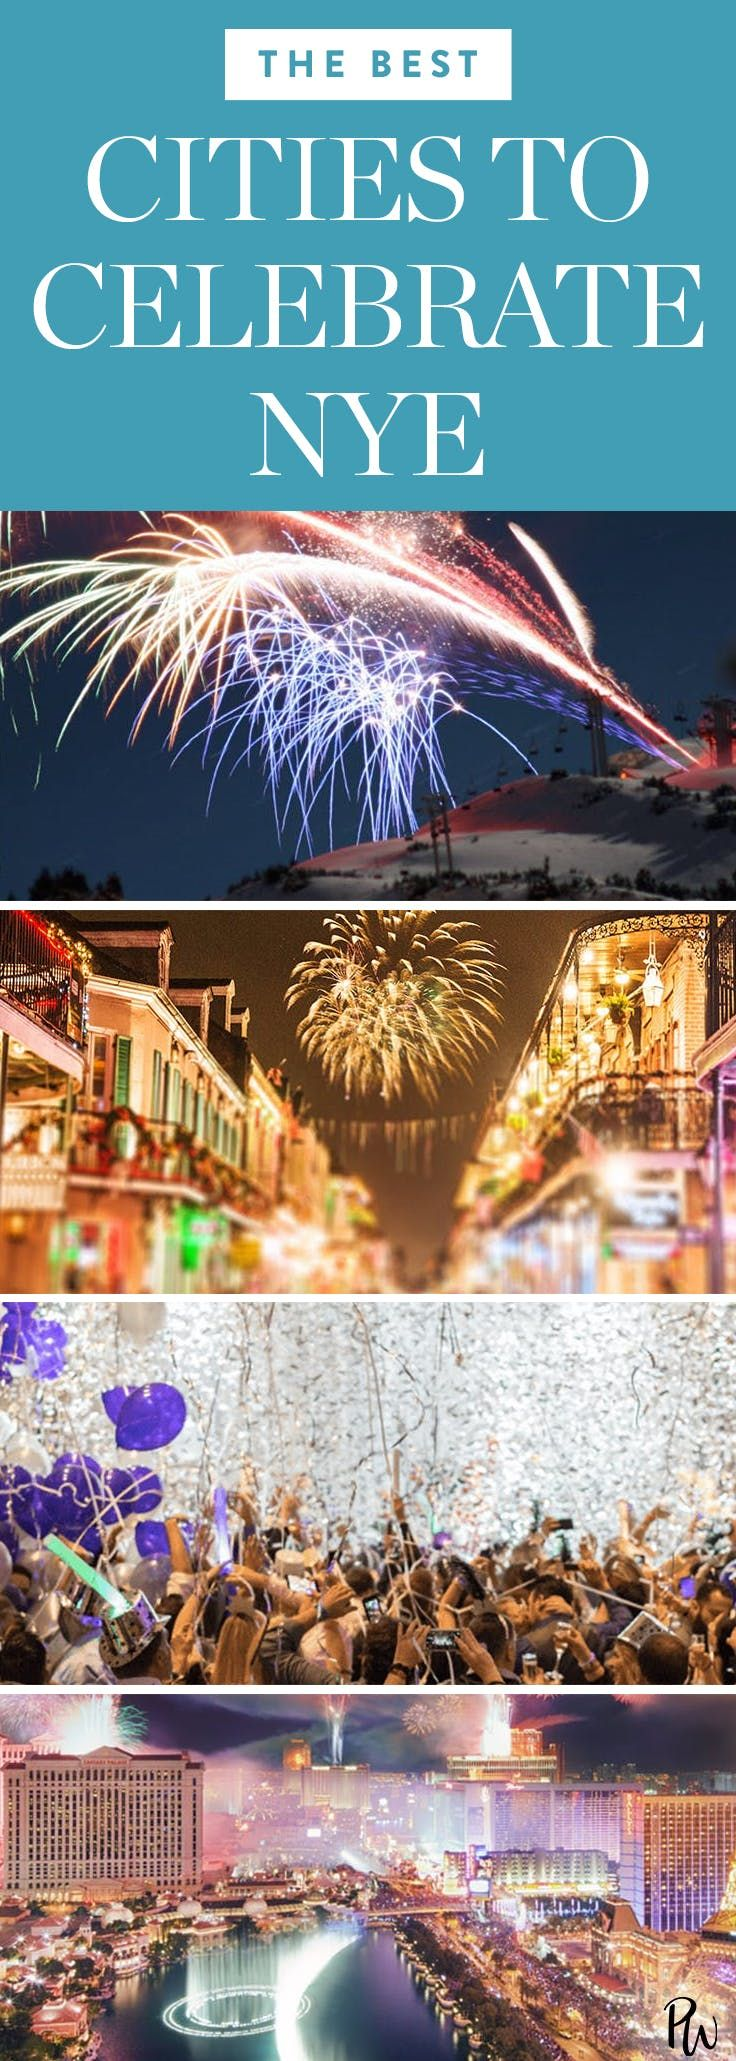 6 Of The Best Places To Celebrate New Year S Eve Across The Country Best Countries To Visit Best Places To Travel Cool Places To Visit